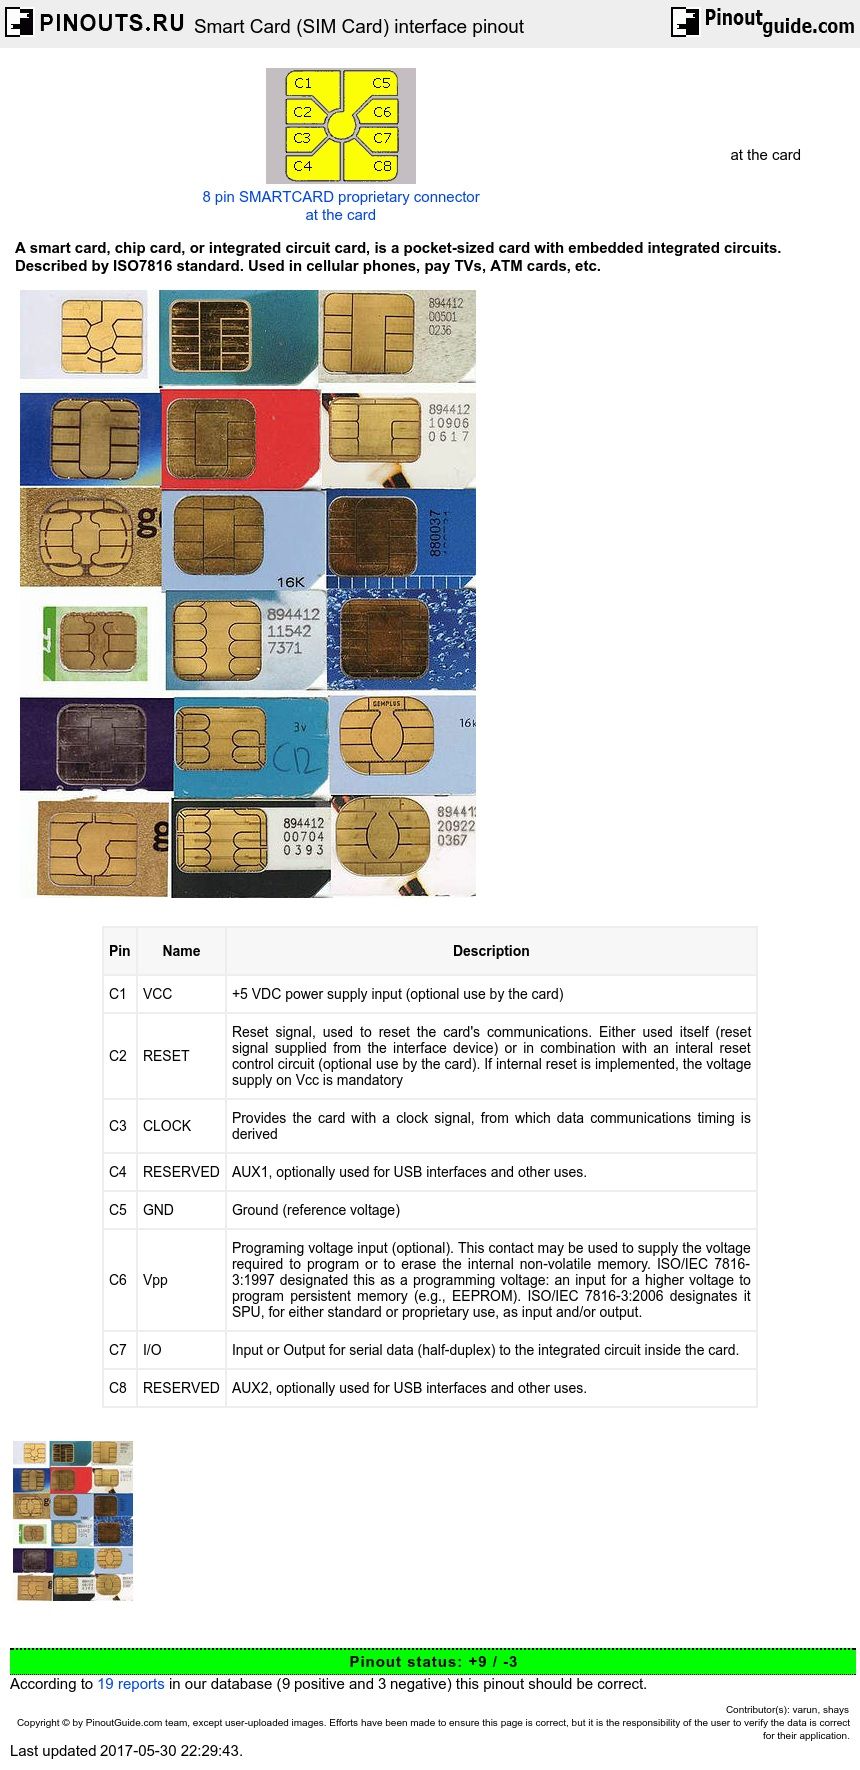 Smart Card (SIM Card) interface diagram